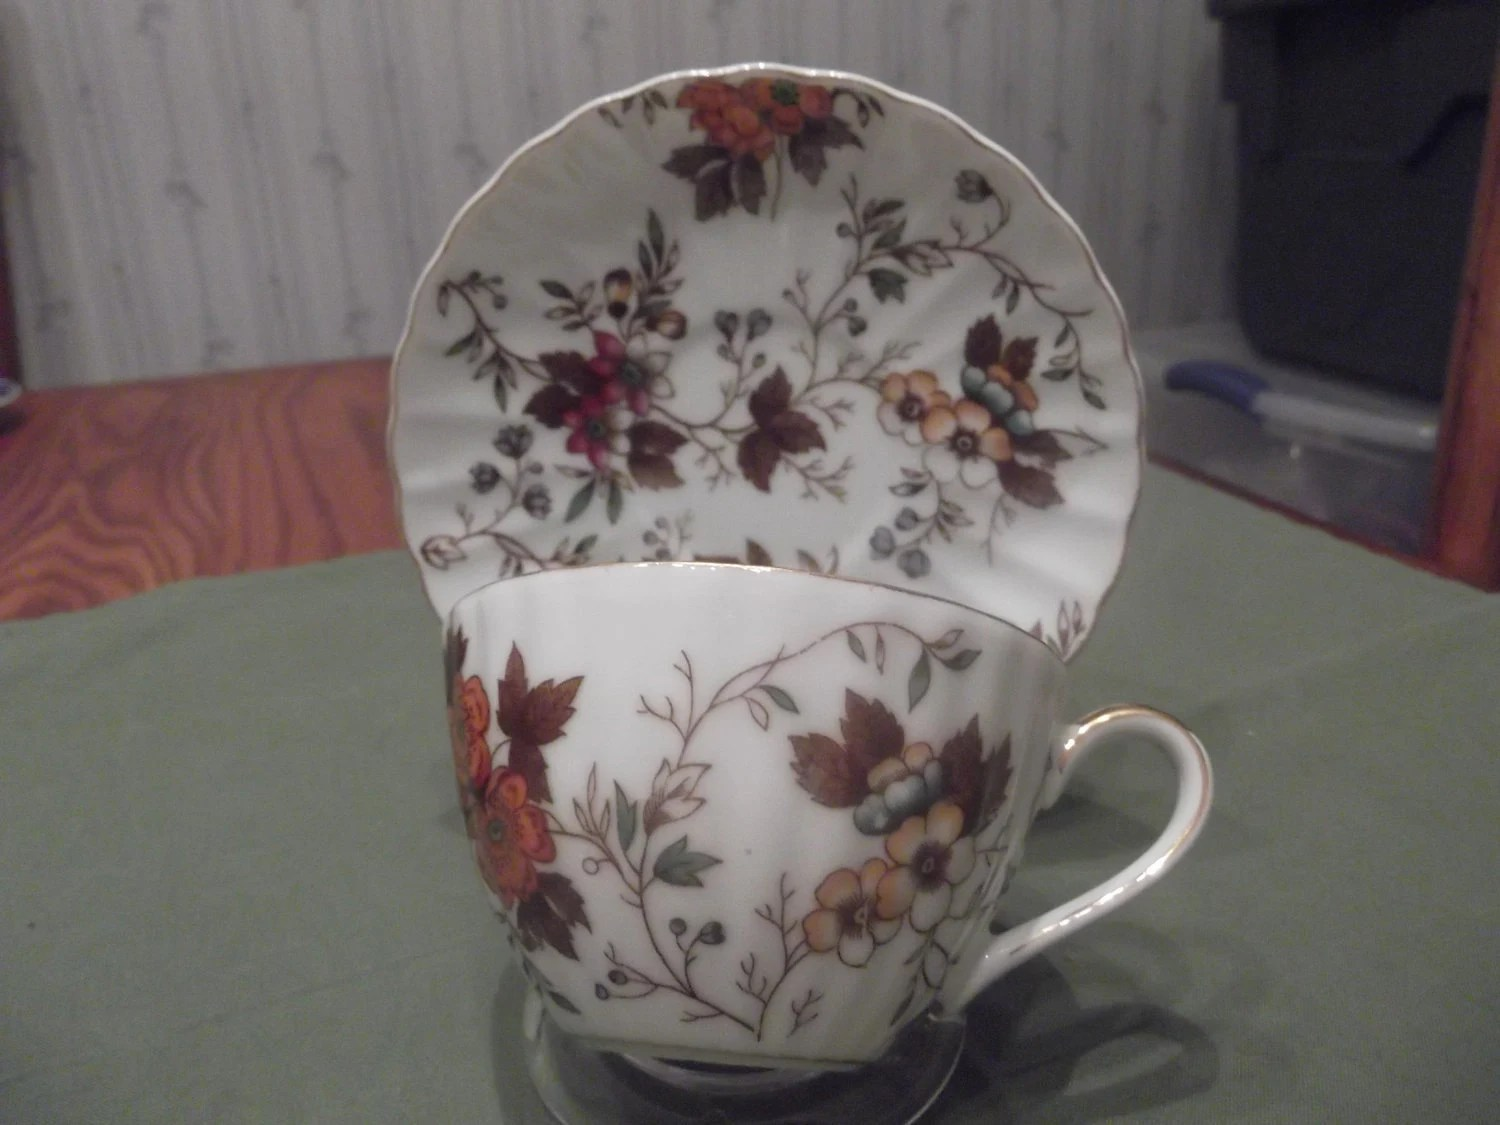 Floral cup and saucer called Autumn Glory circa unknown